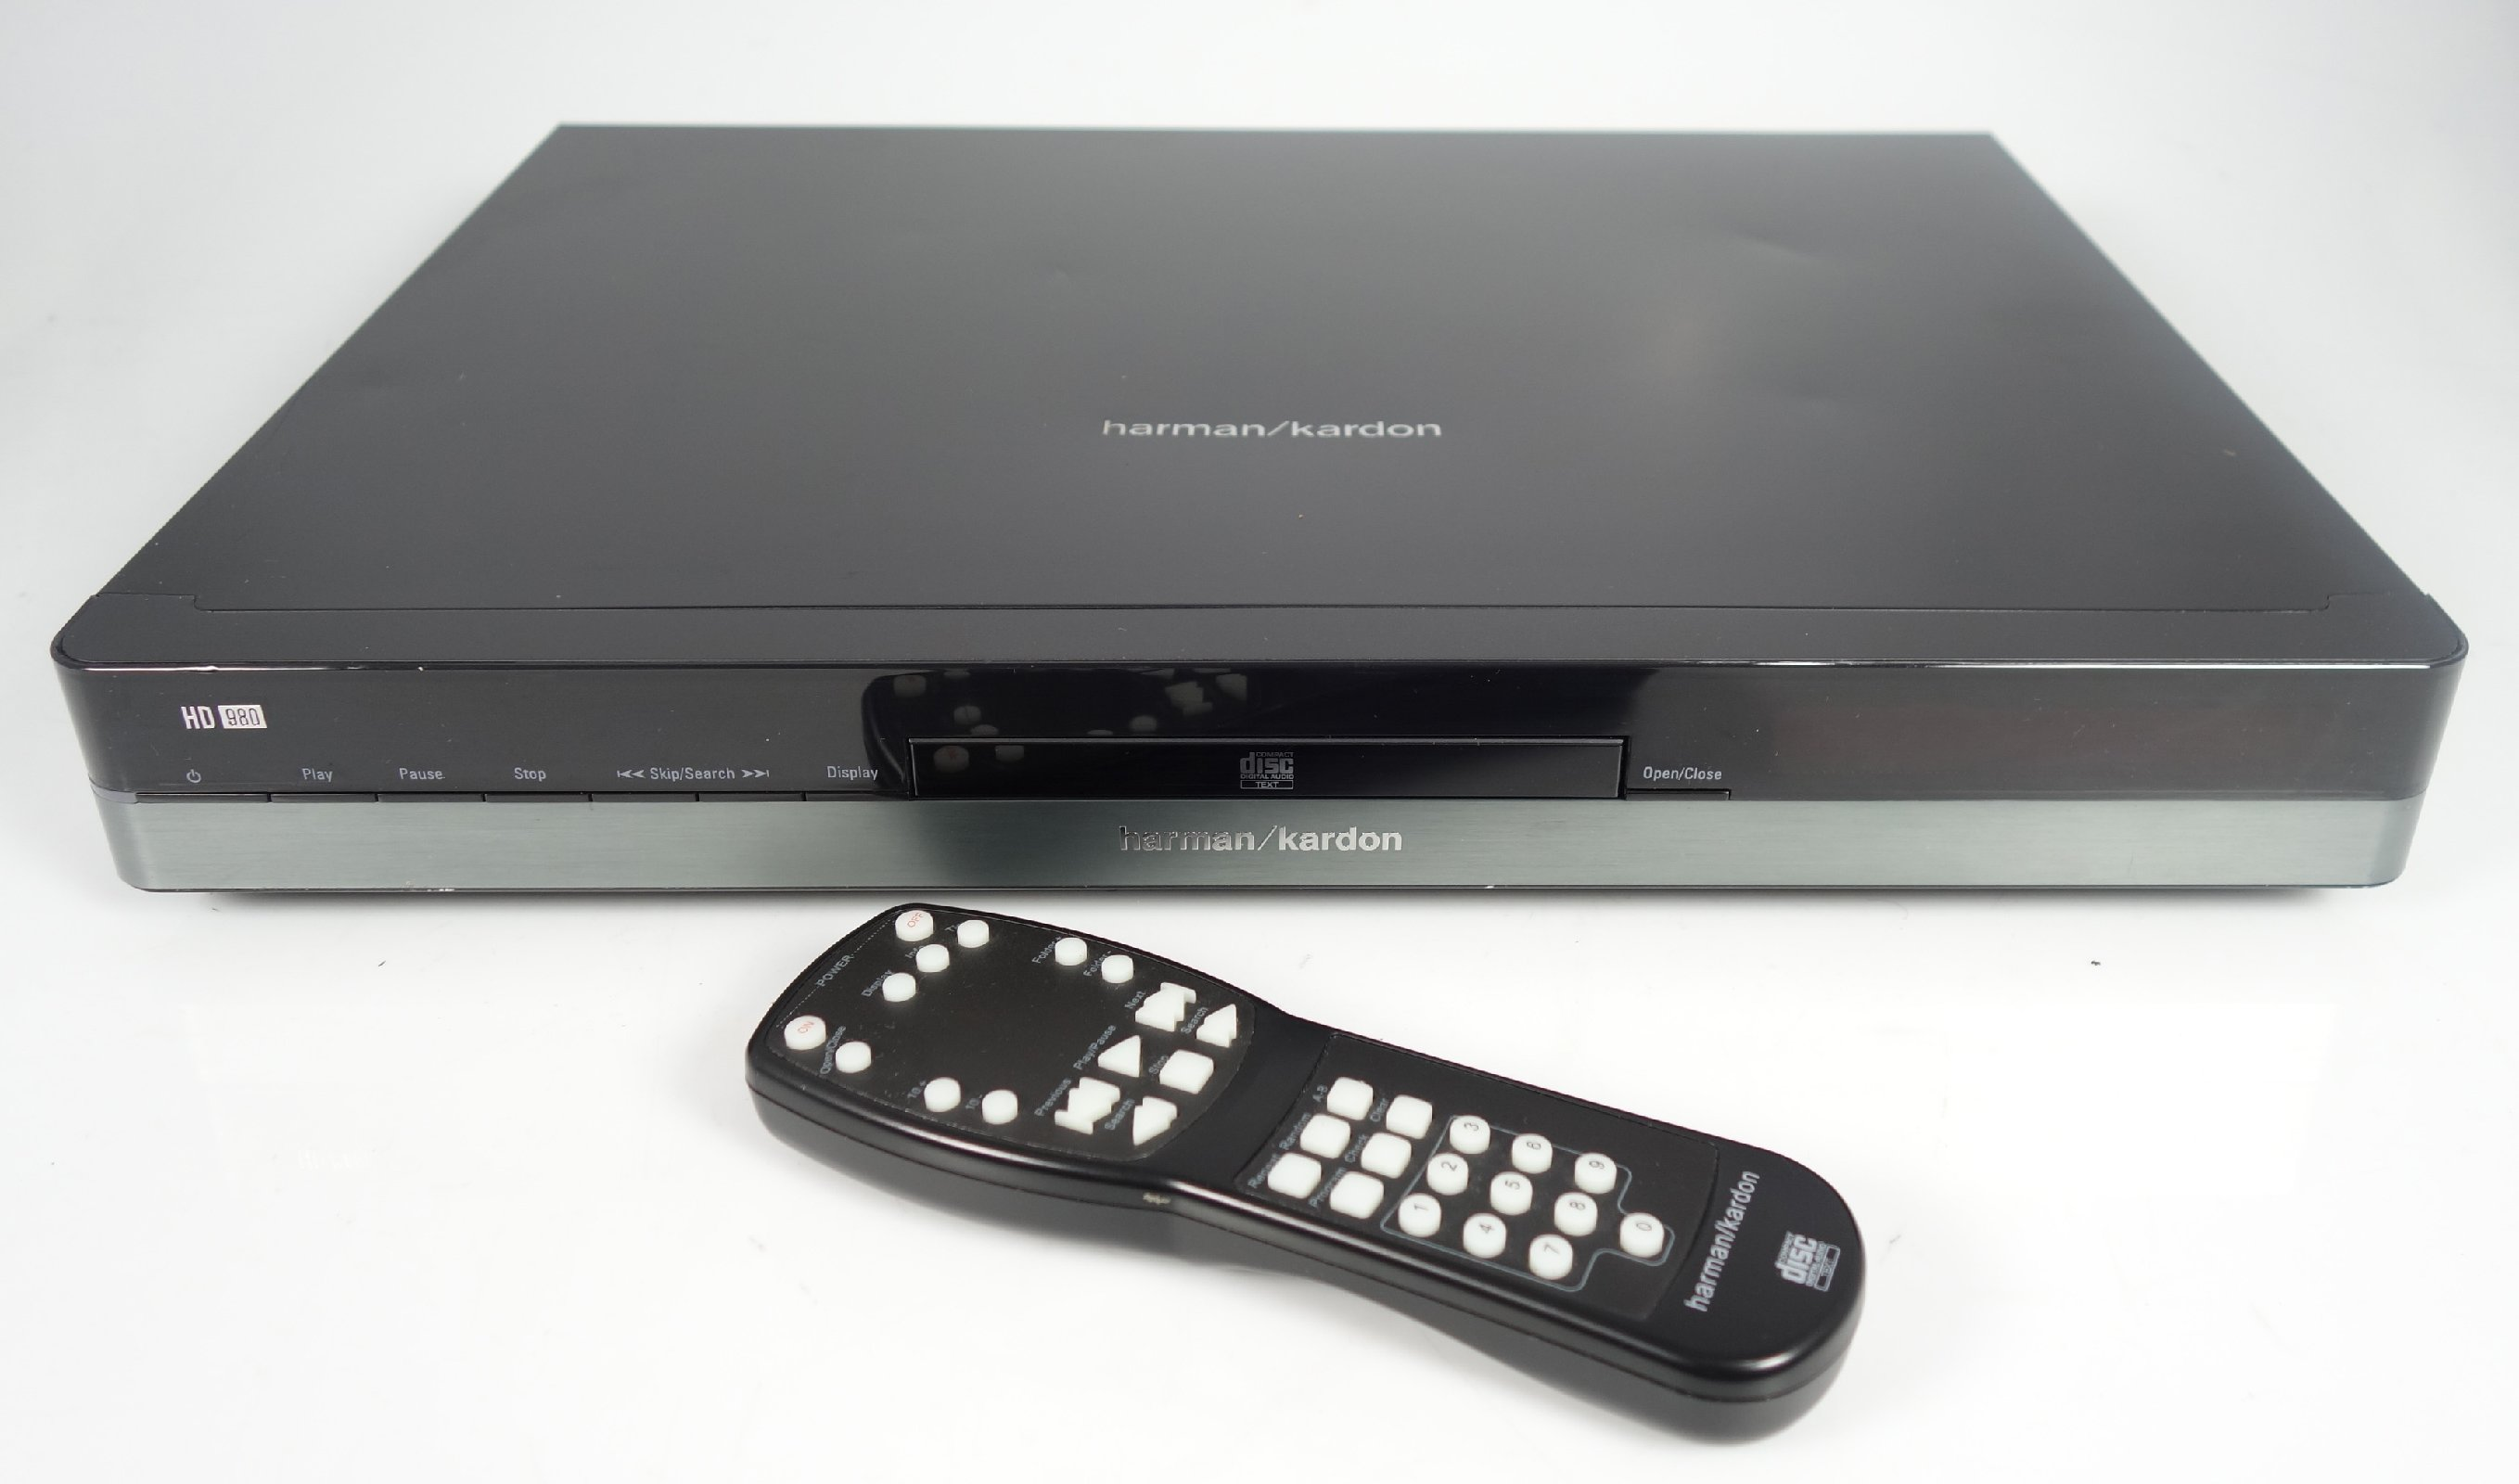 harman kardon hd 980 cd player mit fernbedienung ebay. Black Bedroom Furniture Sets. Home Design Ideas